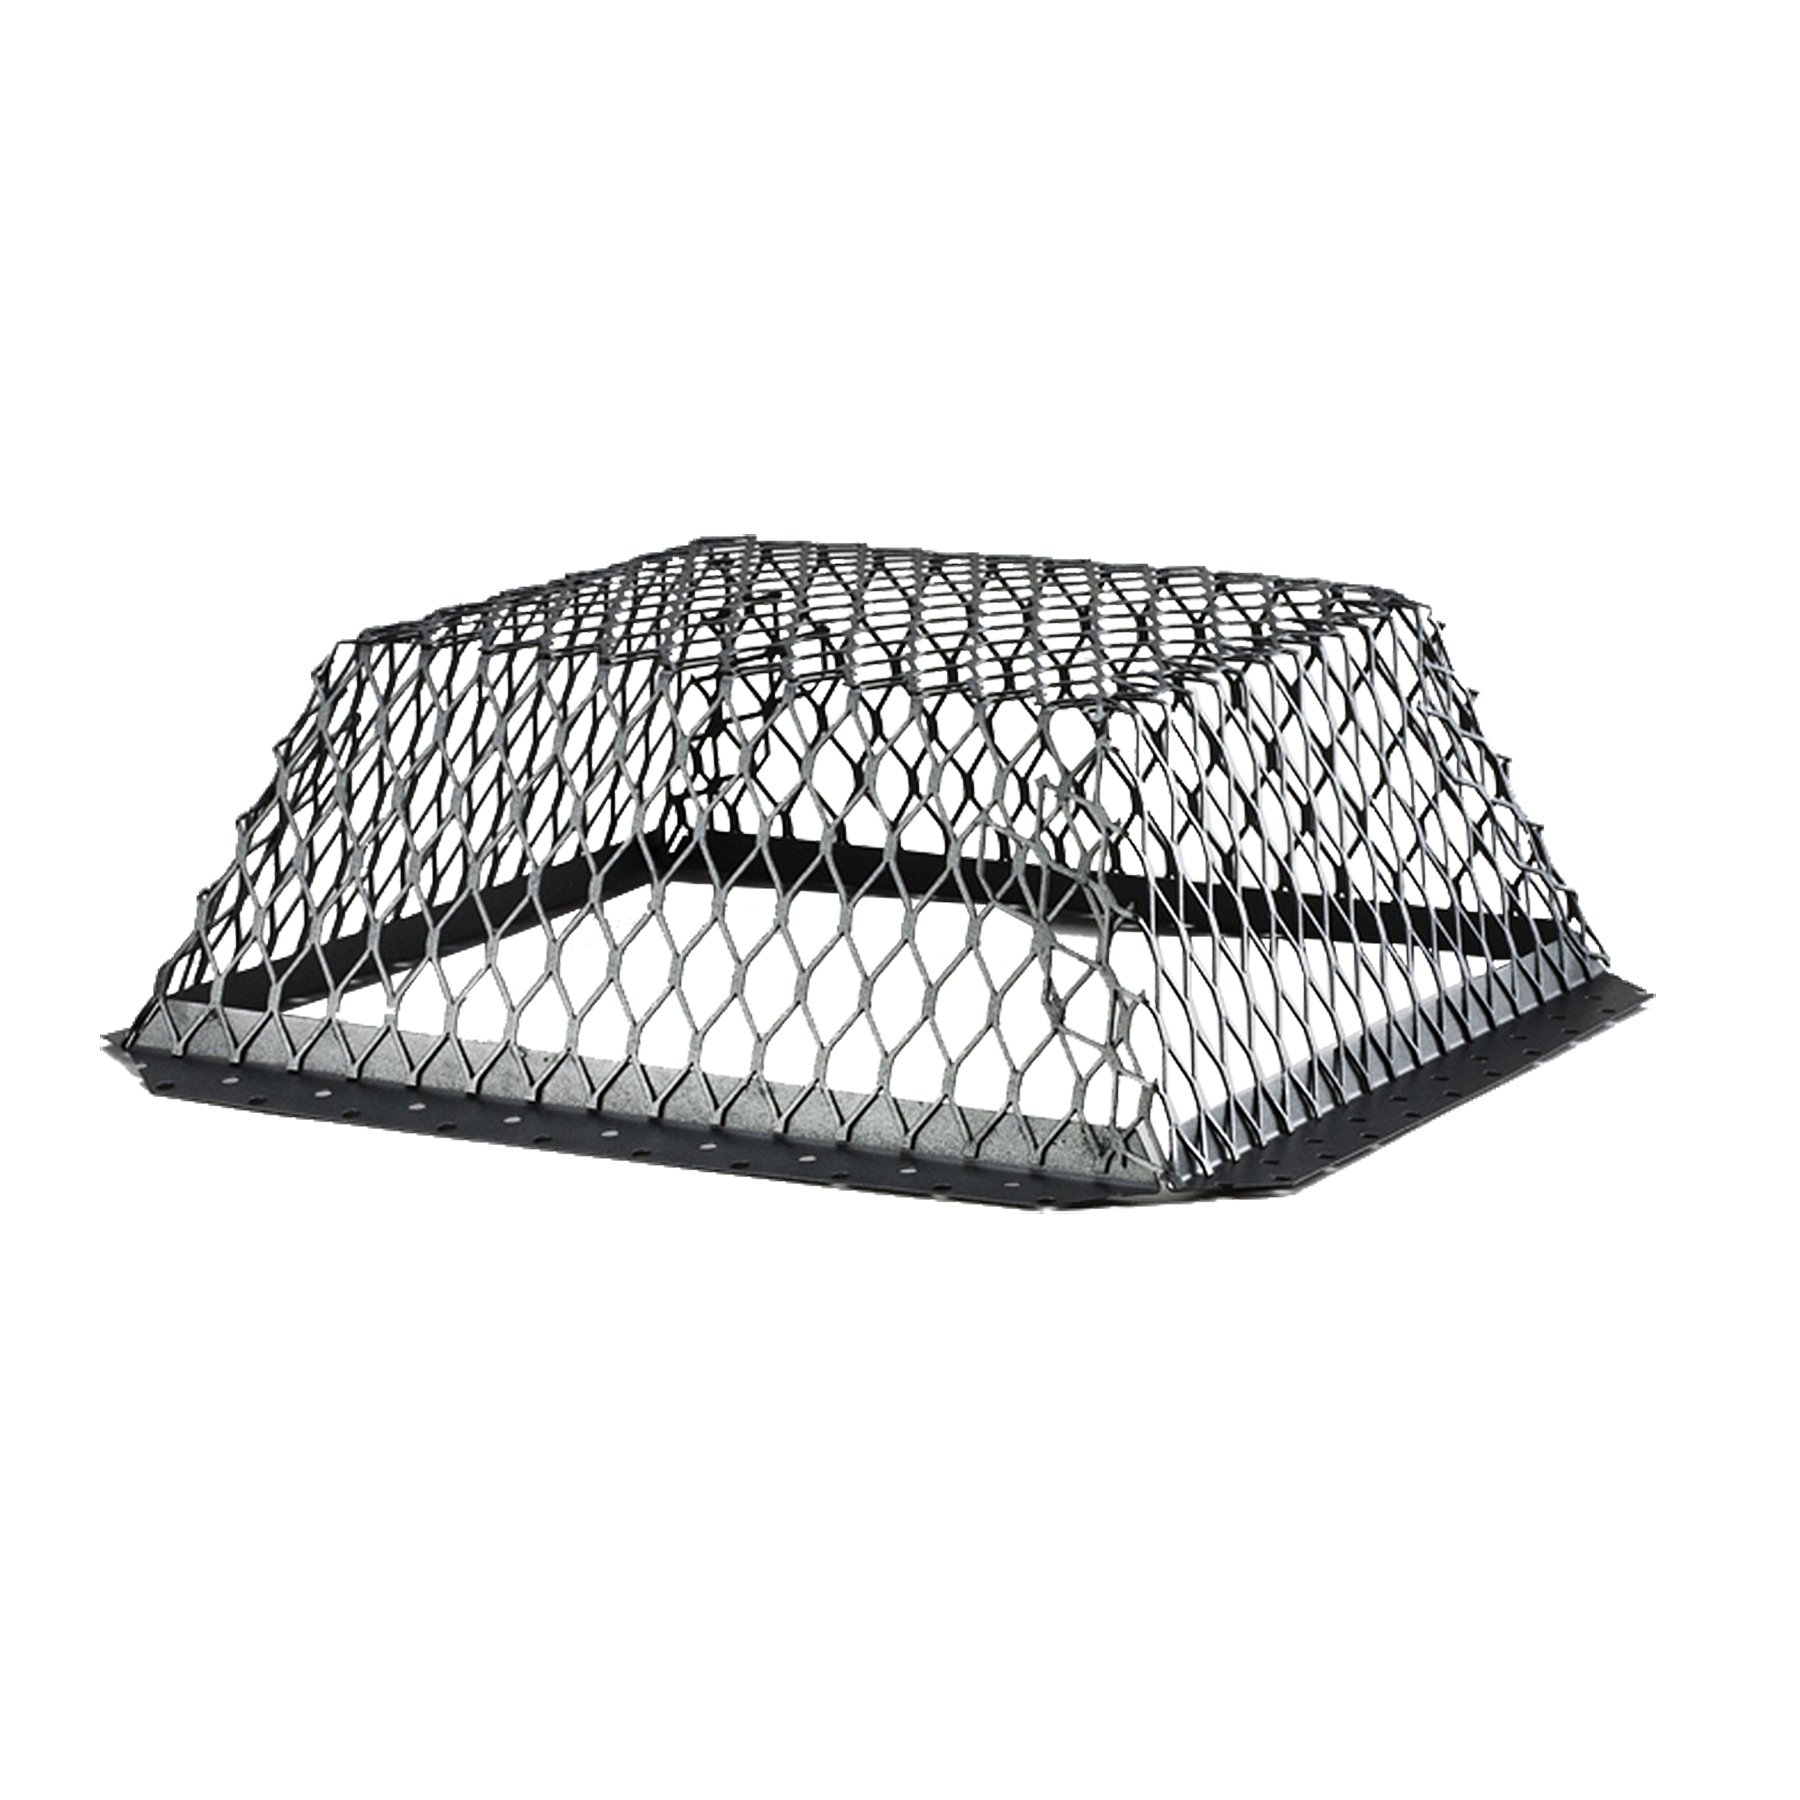 HY-C RVG1616P Black Stainless Steel Roof VentGuard with Wildlife Exclusion Screen, 16'' x 16'' x 6'' by HY-C